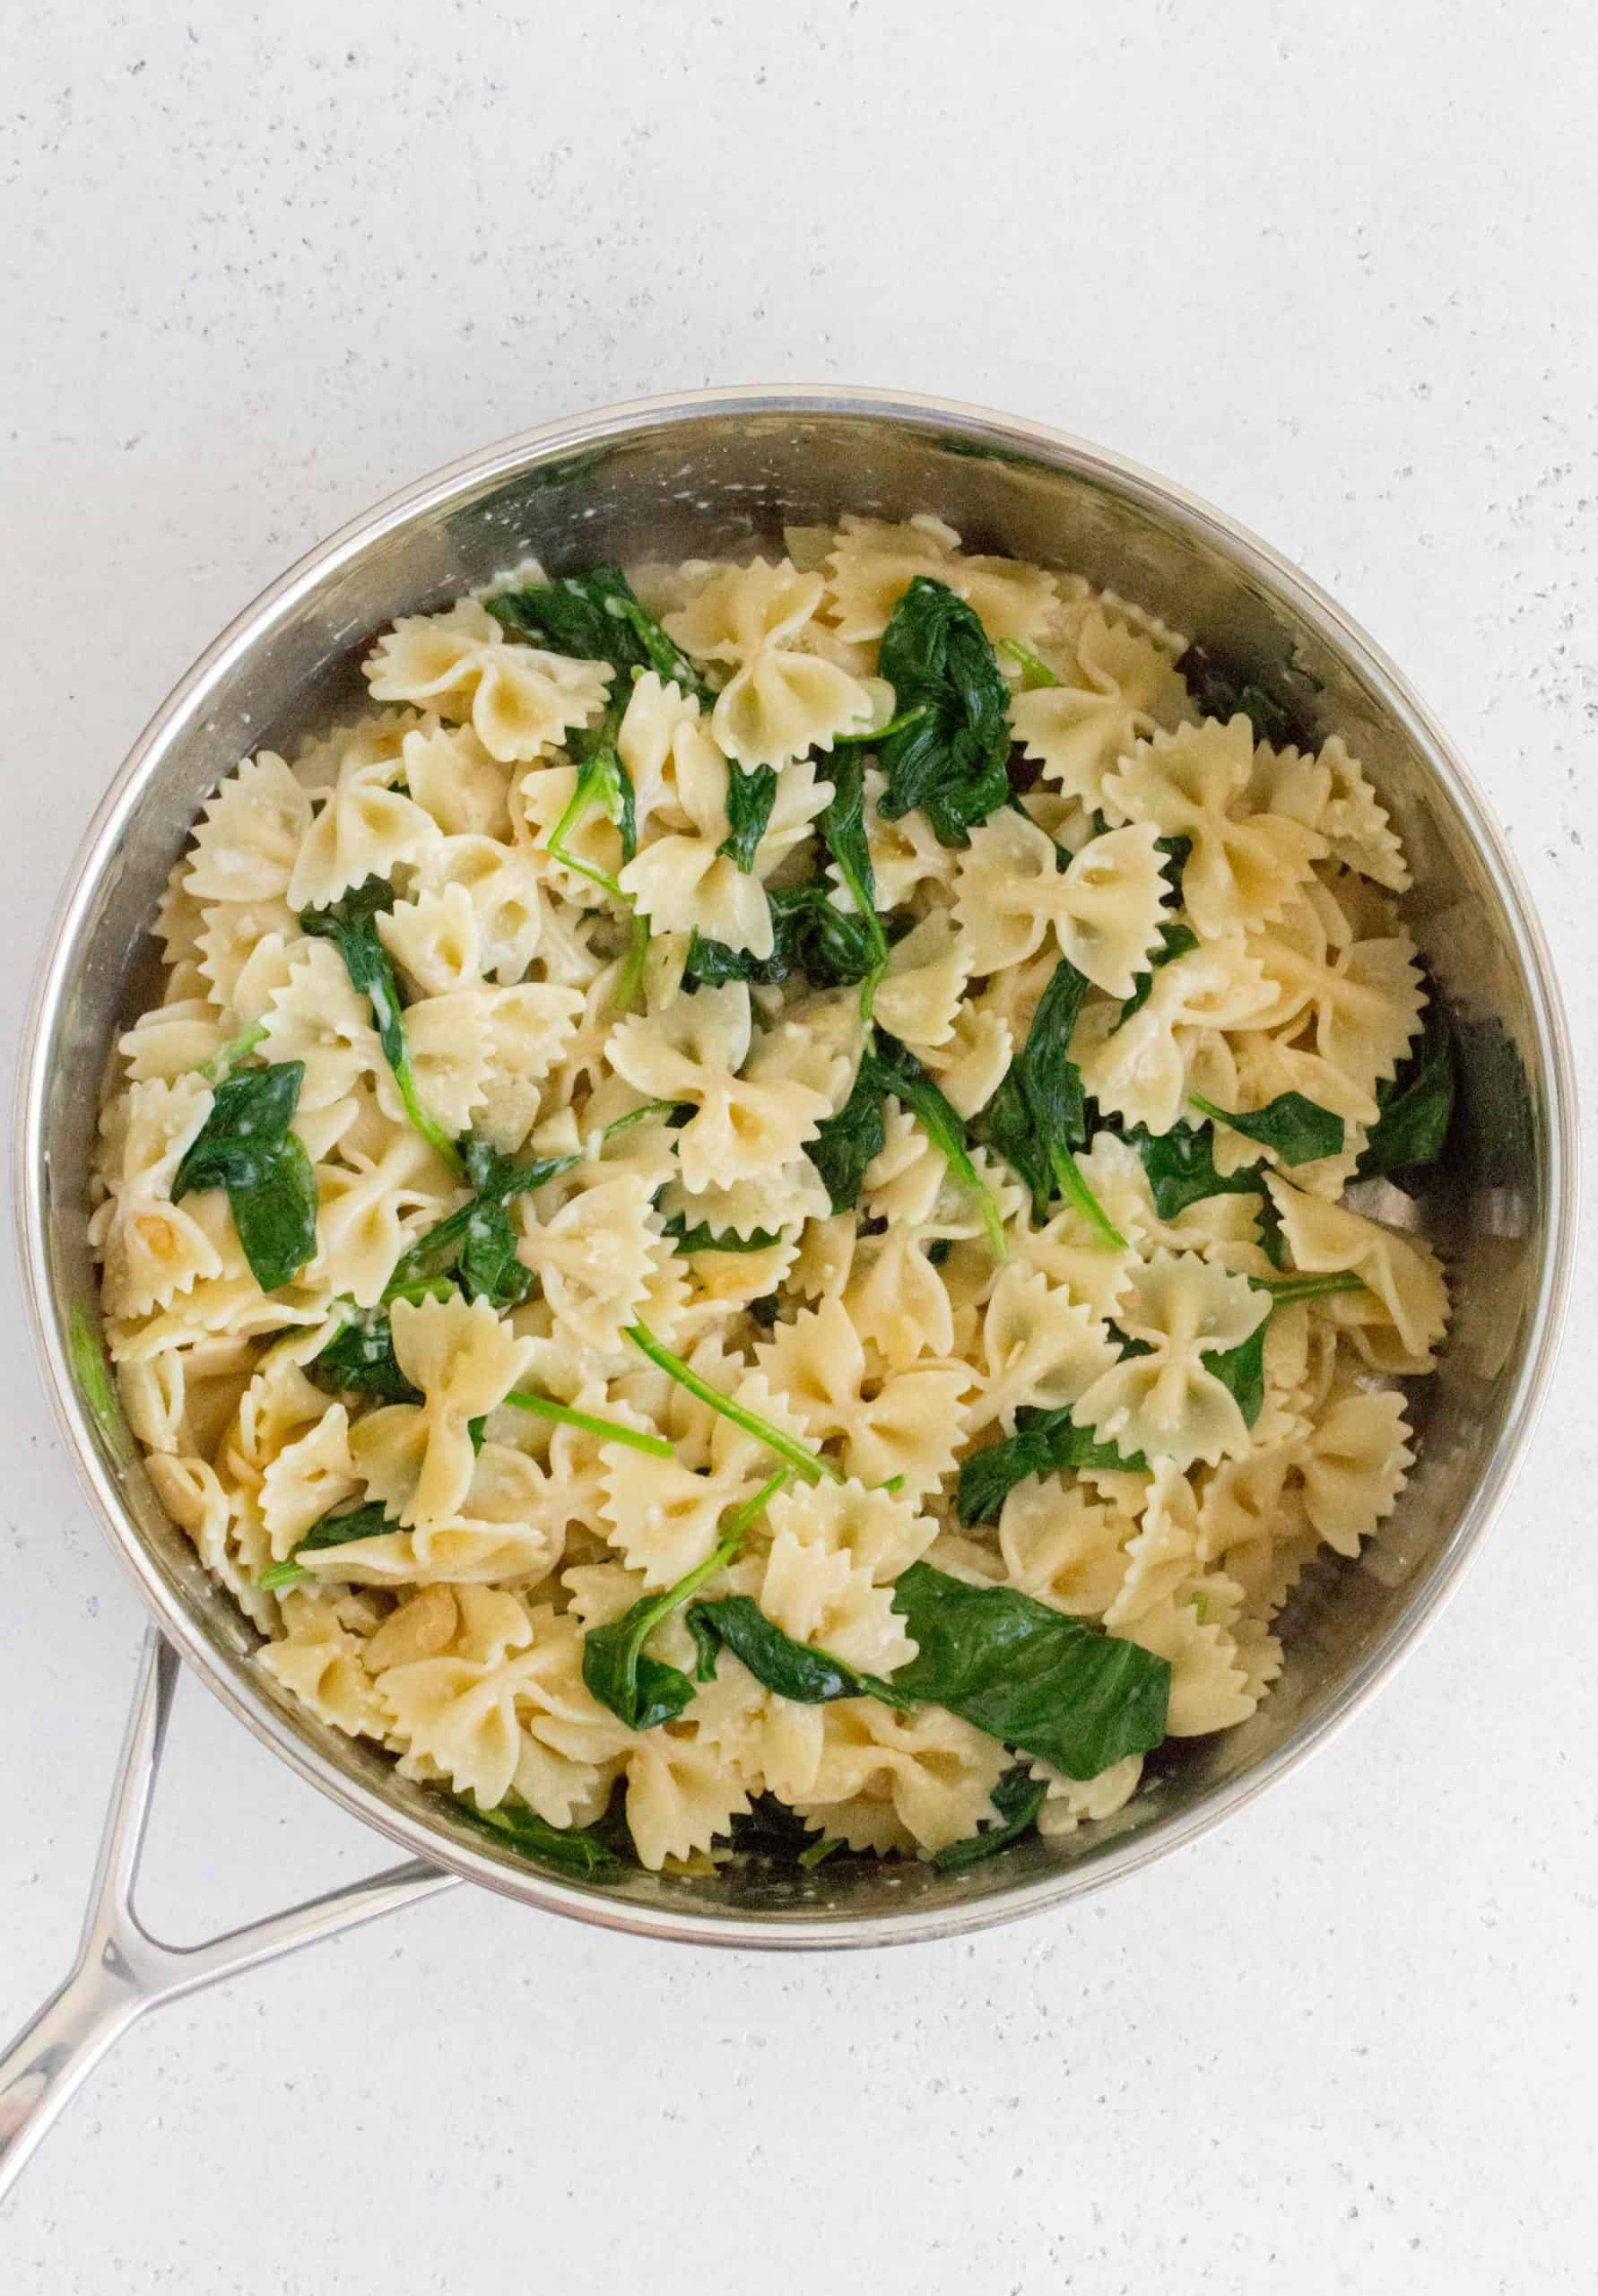 saute pan with bow tie pasta and spinach, wilted